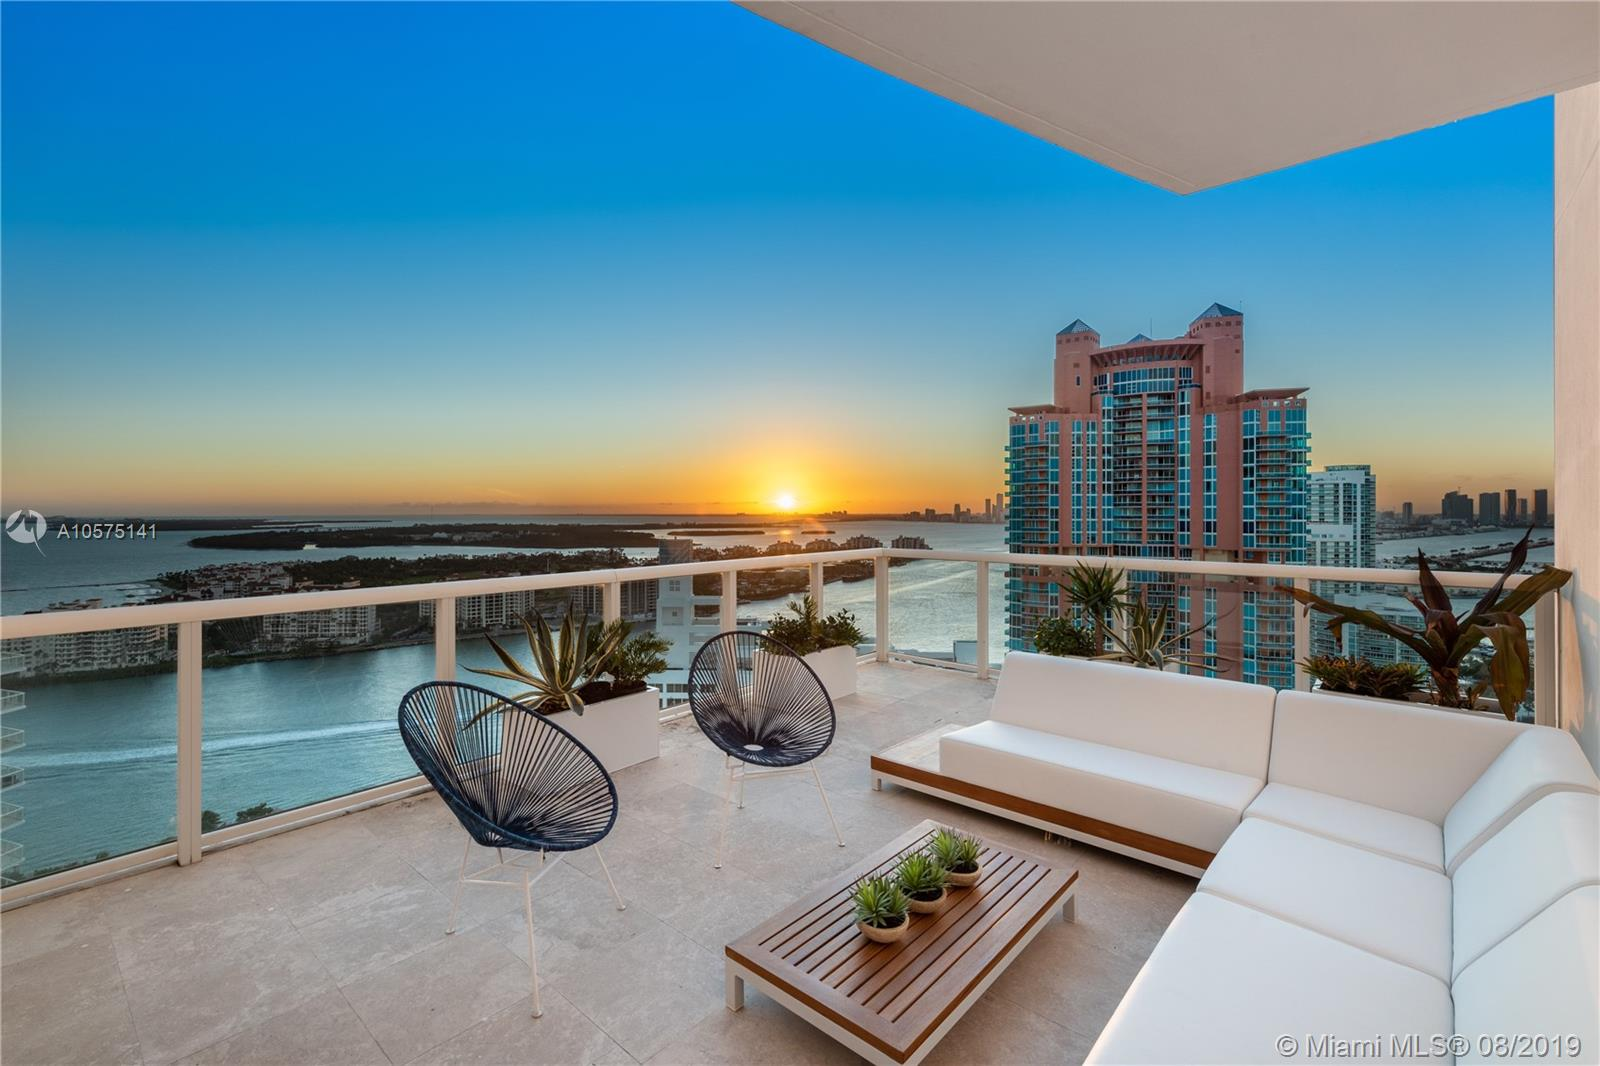 50 S Pointe Dr, Unit #3302 Luxury Real Estate